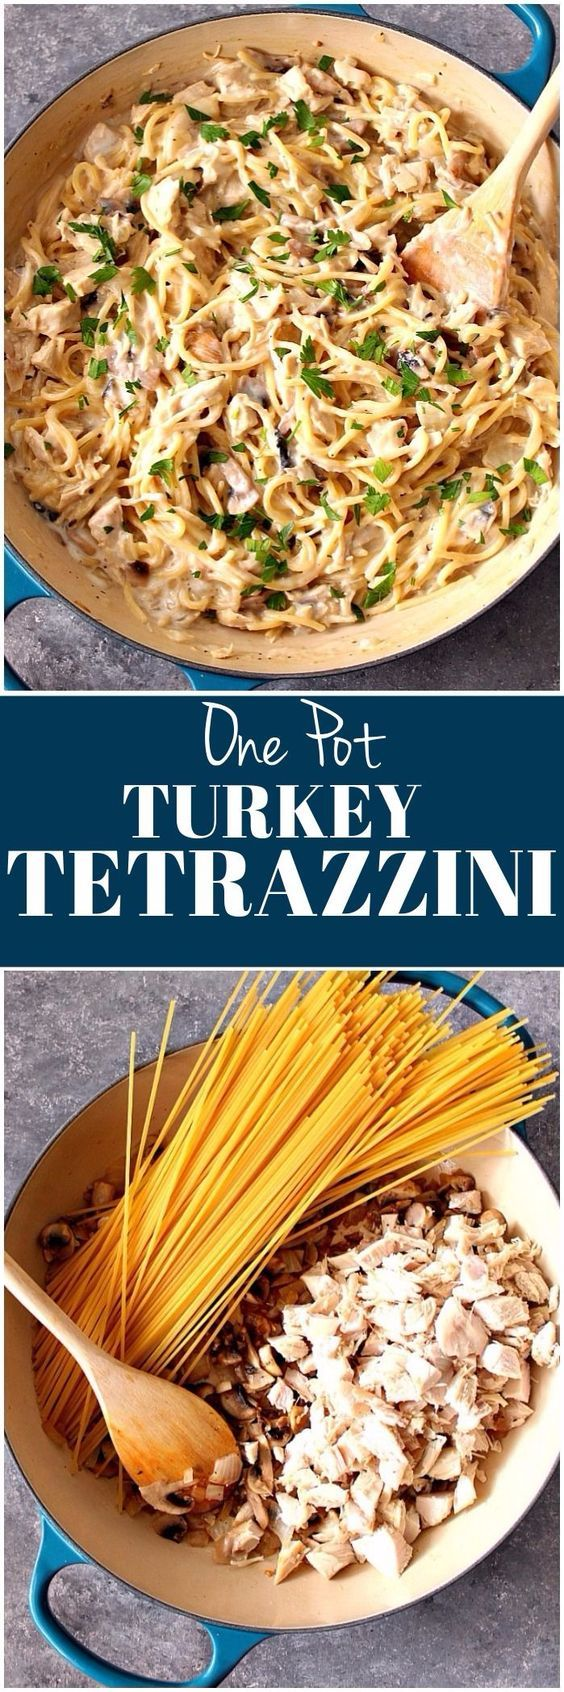 One Pot Turkey Tetrazzini Recipe - quick and easy dish with leftover turkey meat, creamy mushroom garlic sauce and noodles. www.crunchycreamysweet.com